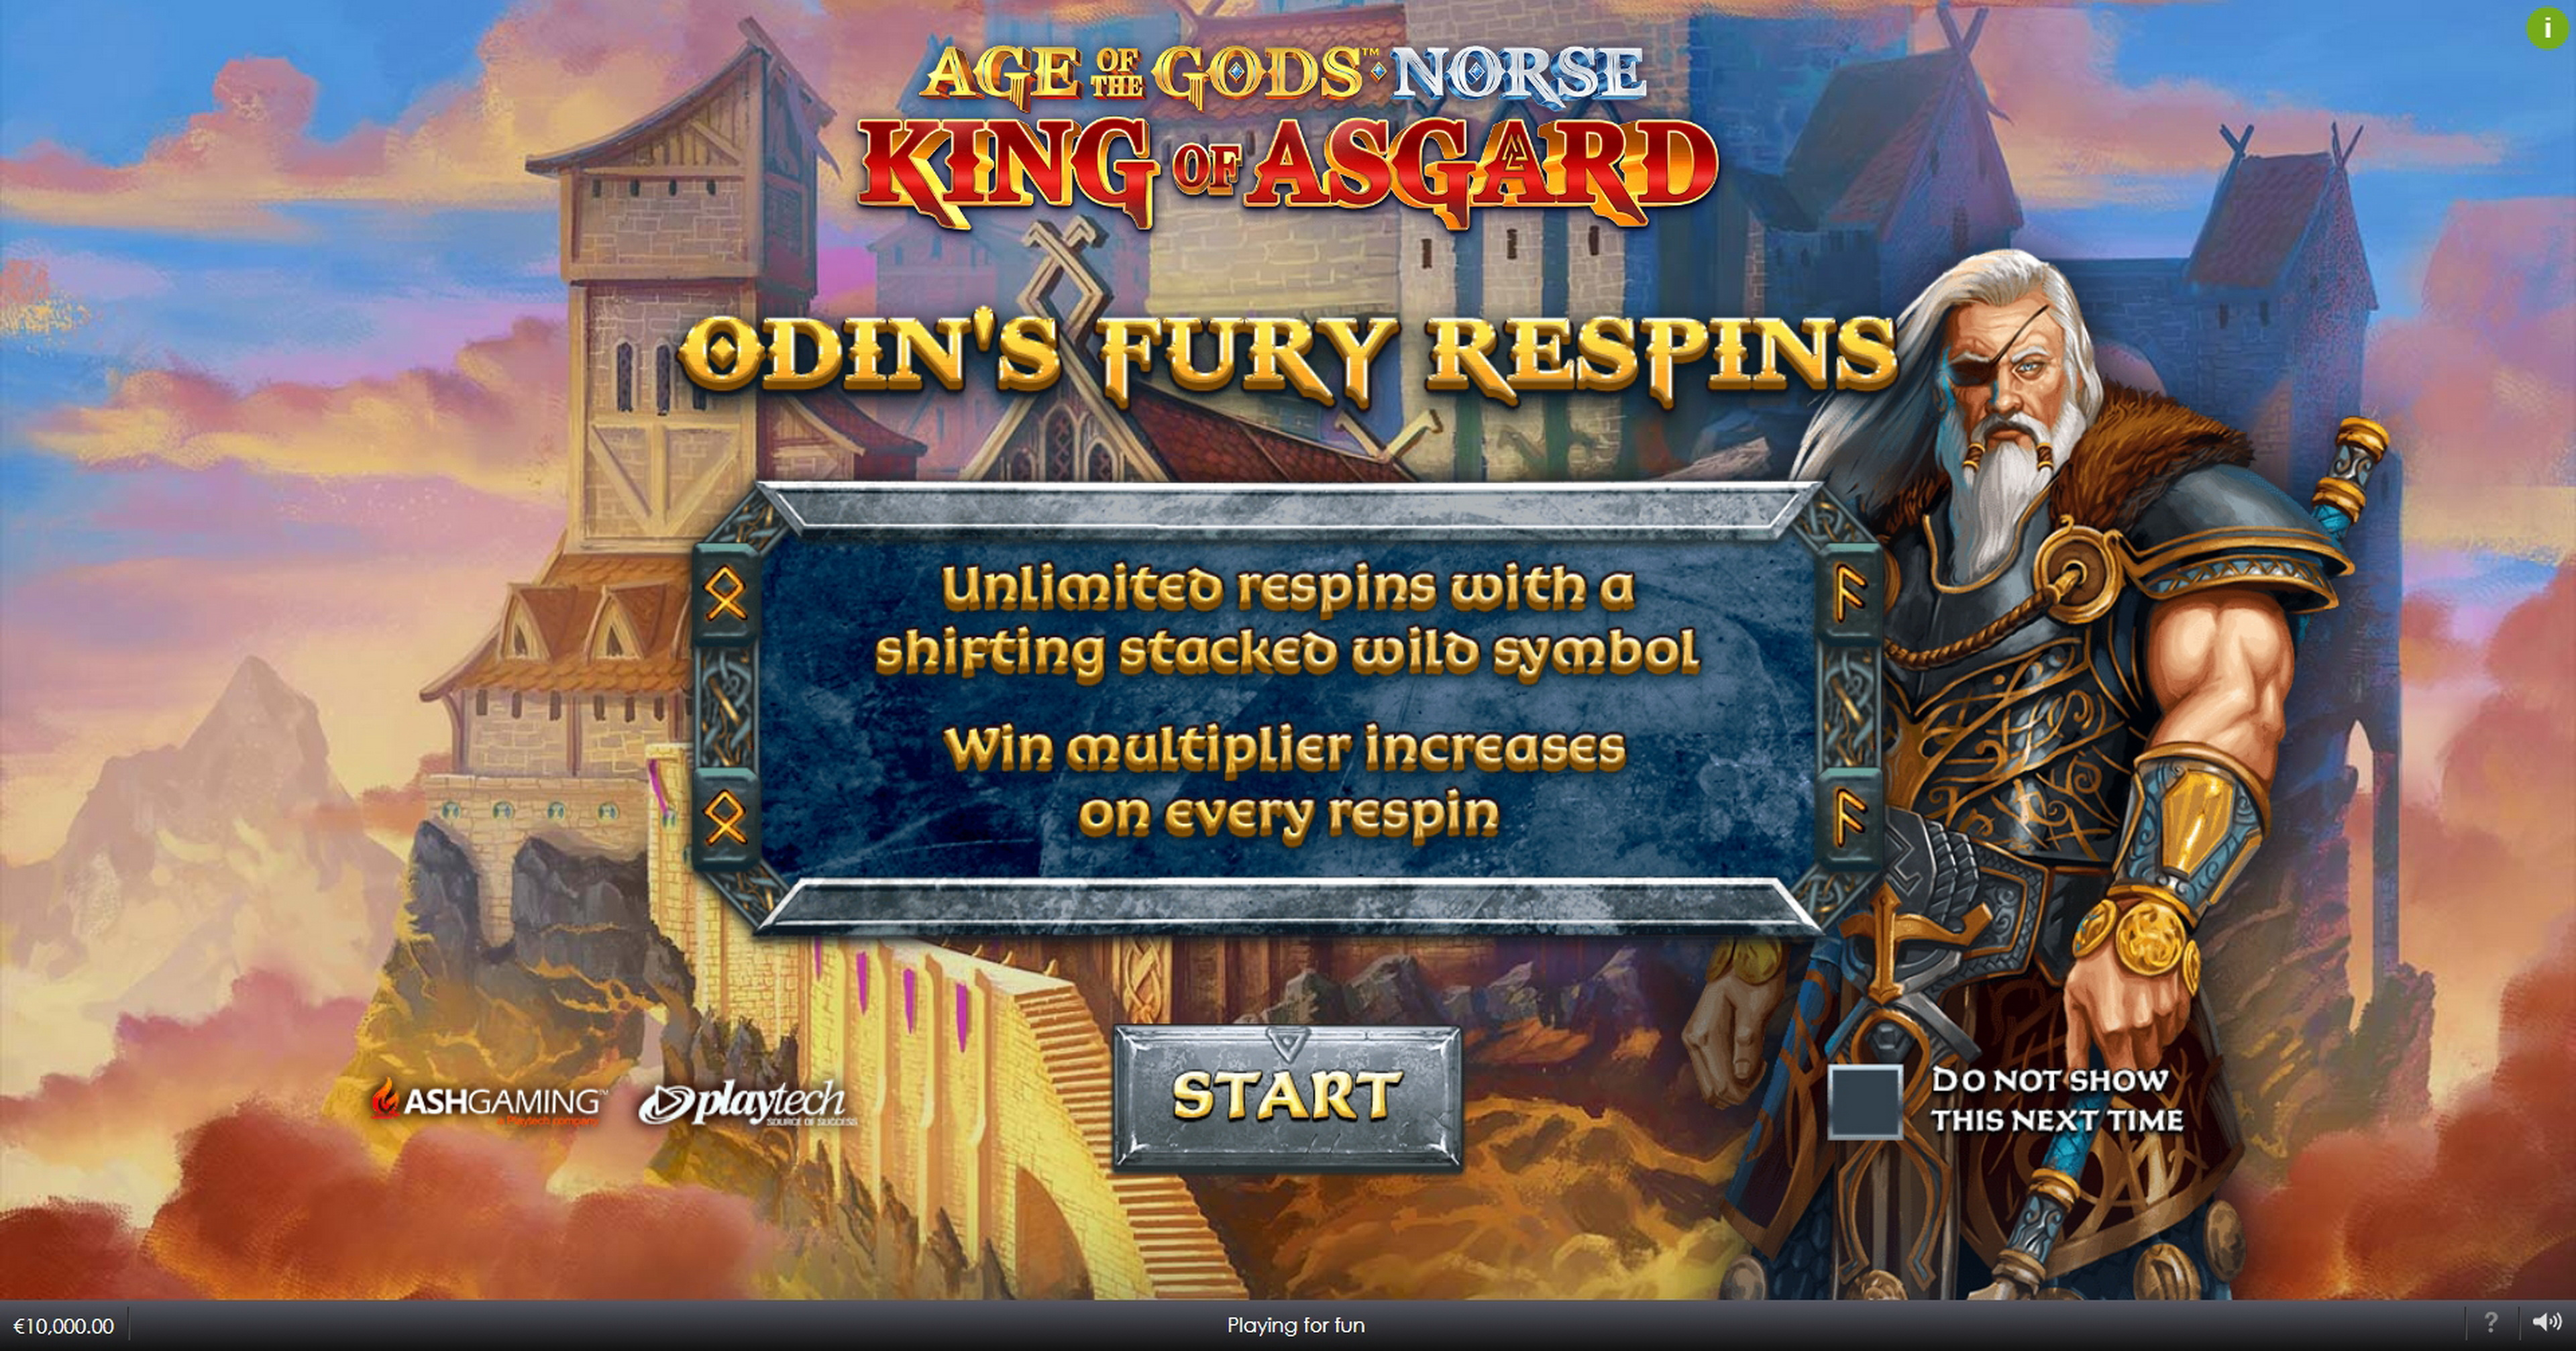 Play Age of the Gods Norse King of Asgard Free Casino Slot Game by Ash Gaming